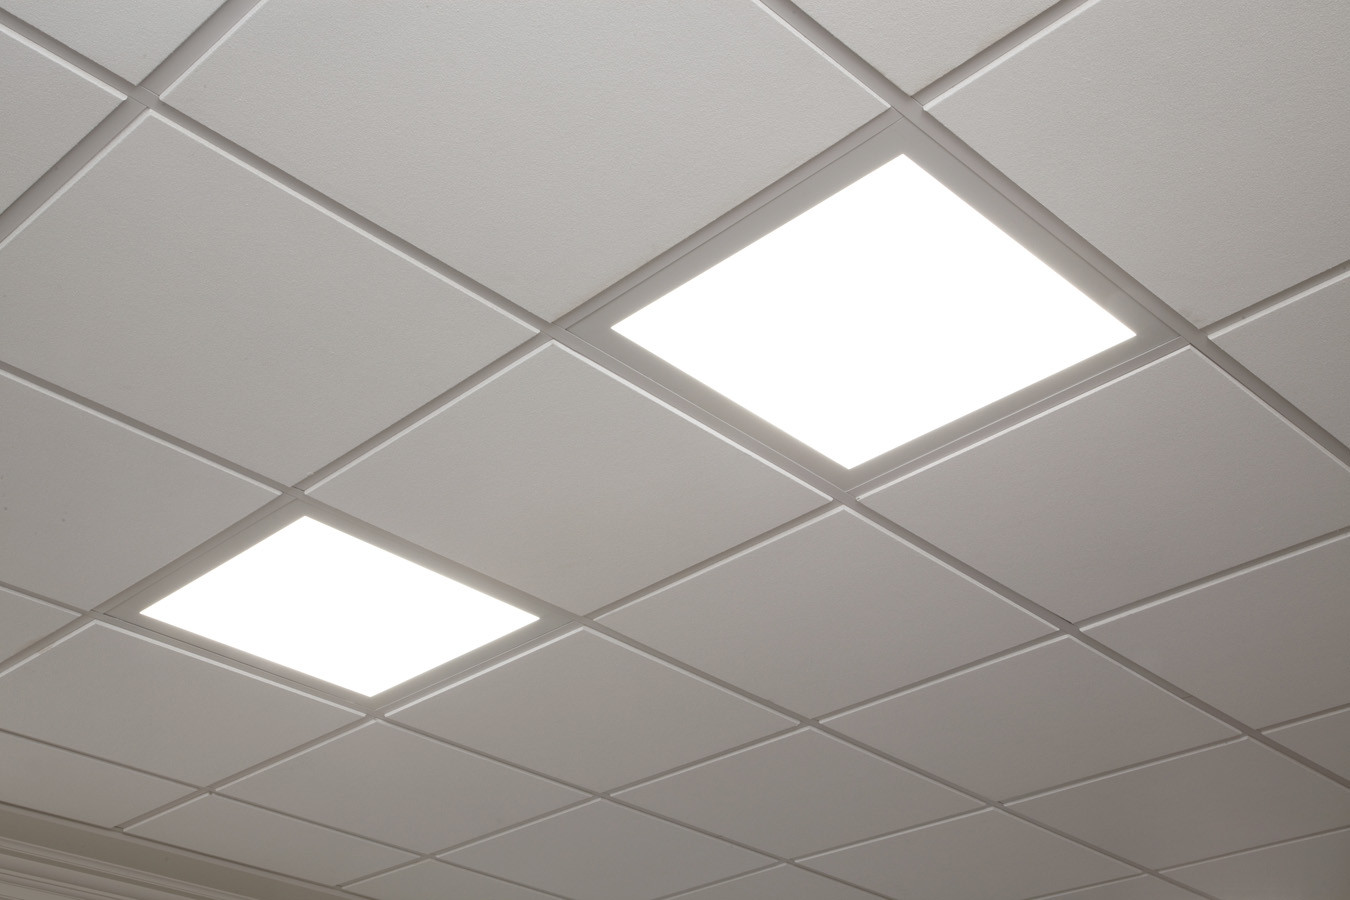 Suspended ceiling led panel light ceiling designs led ceiling tile lights designs dailygadgetfo Image collections